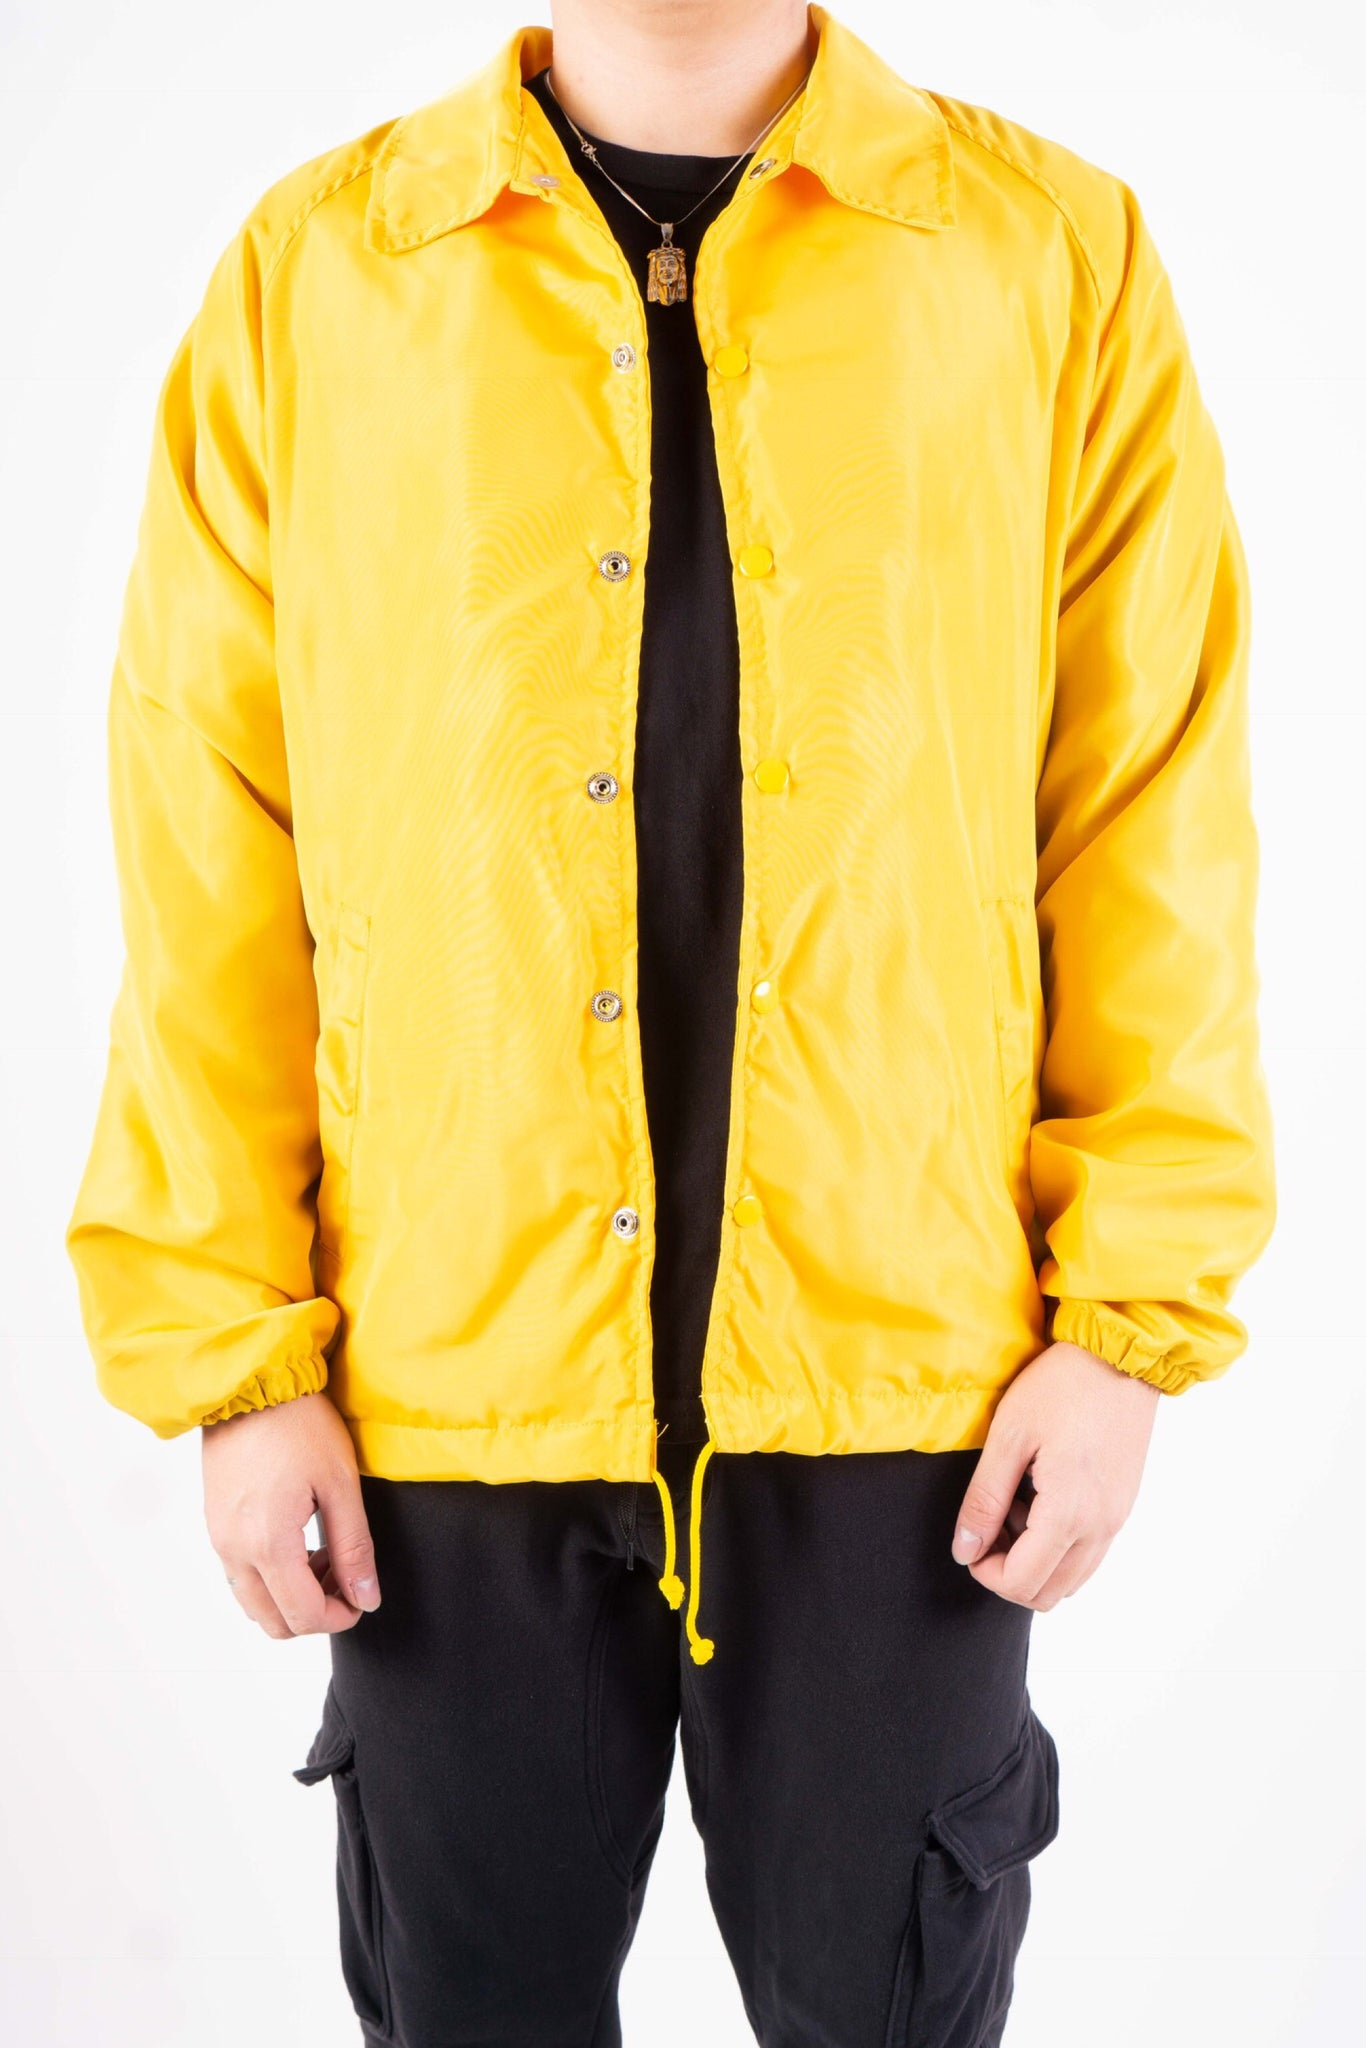 COACH JACKET IN YELLOW GOLD